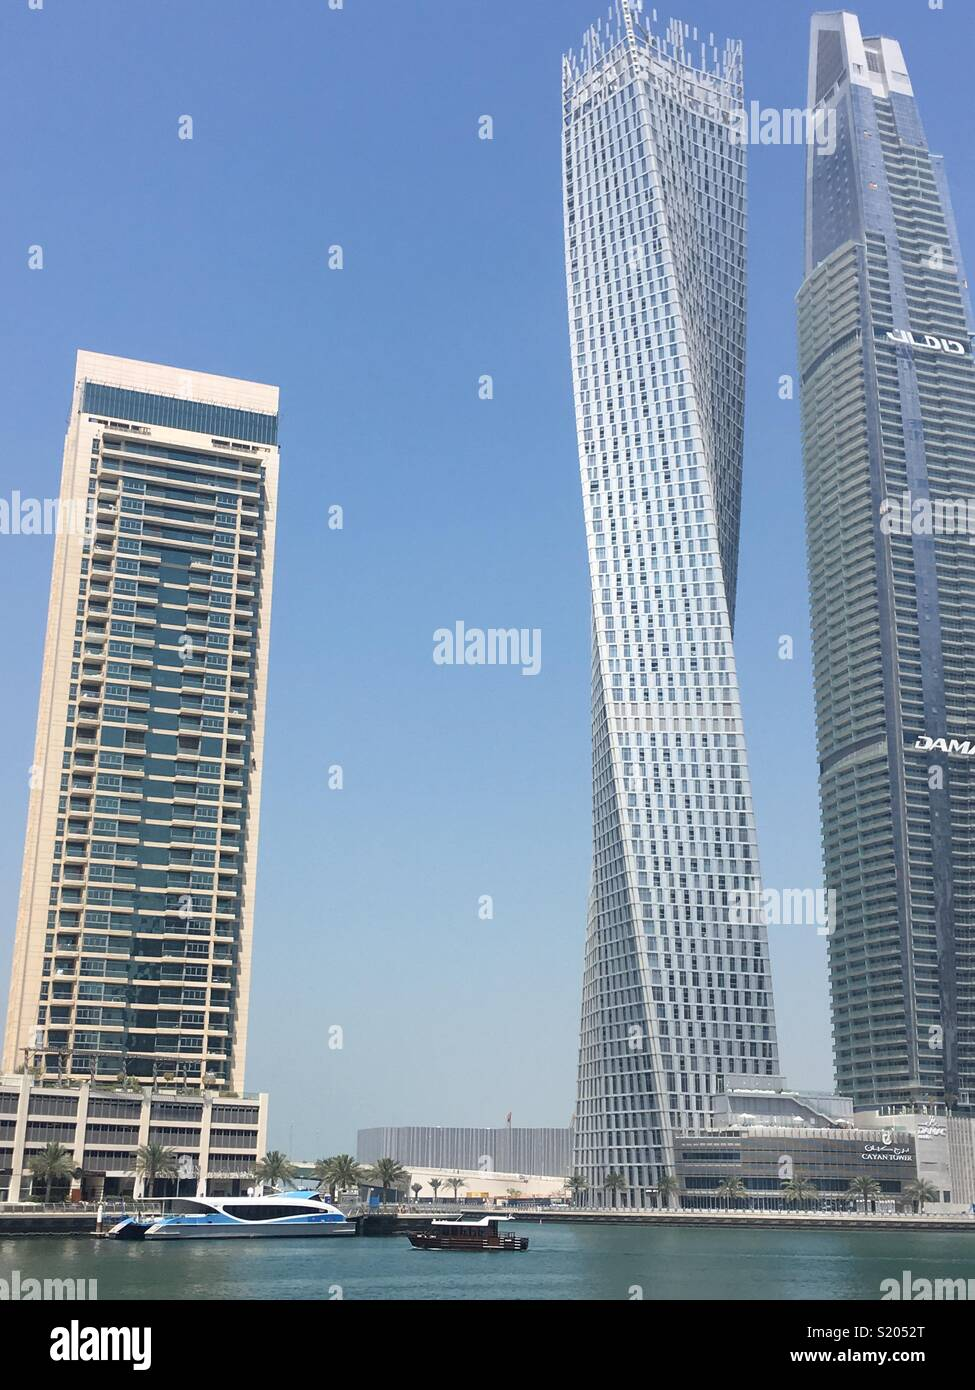 Cayan Tower the twisted building in Dubai. U.A.E. - Stock Image